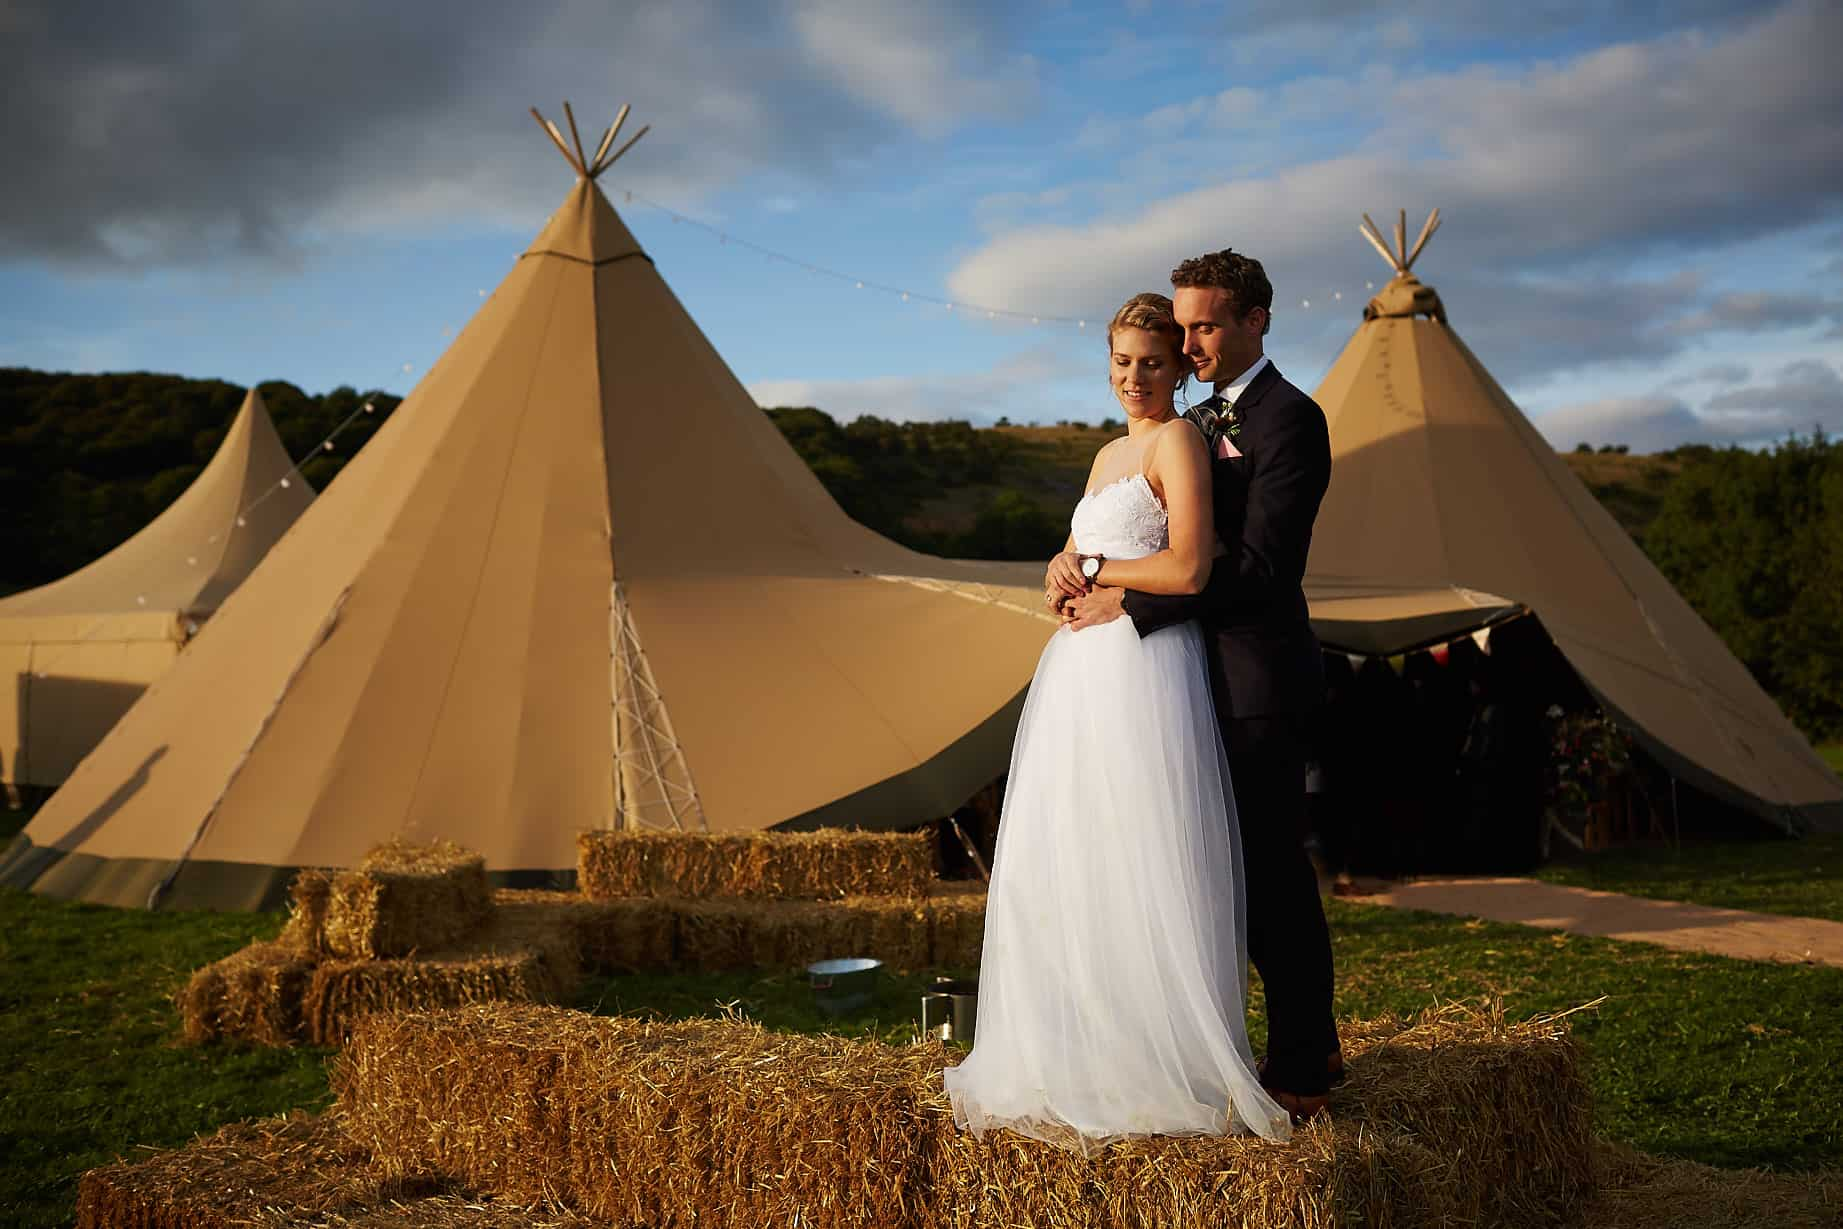 Tipi Hire outdoor wedding - Sami Tipi Wedding captured by Ben Pollard